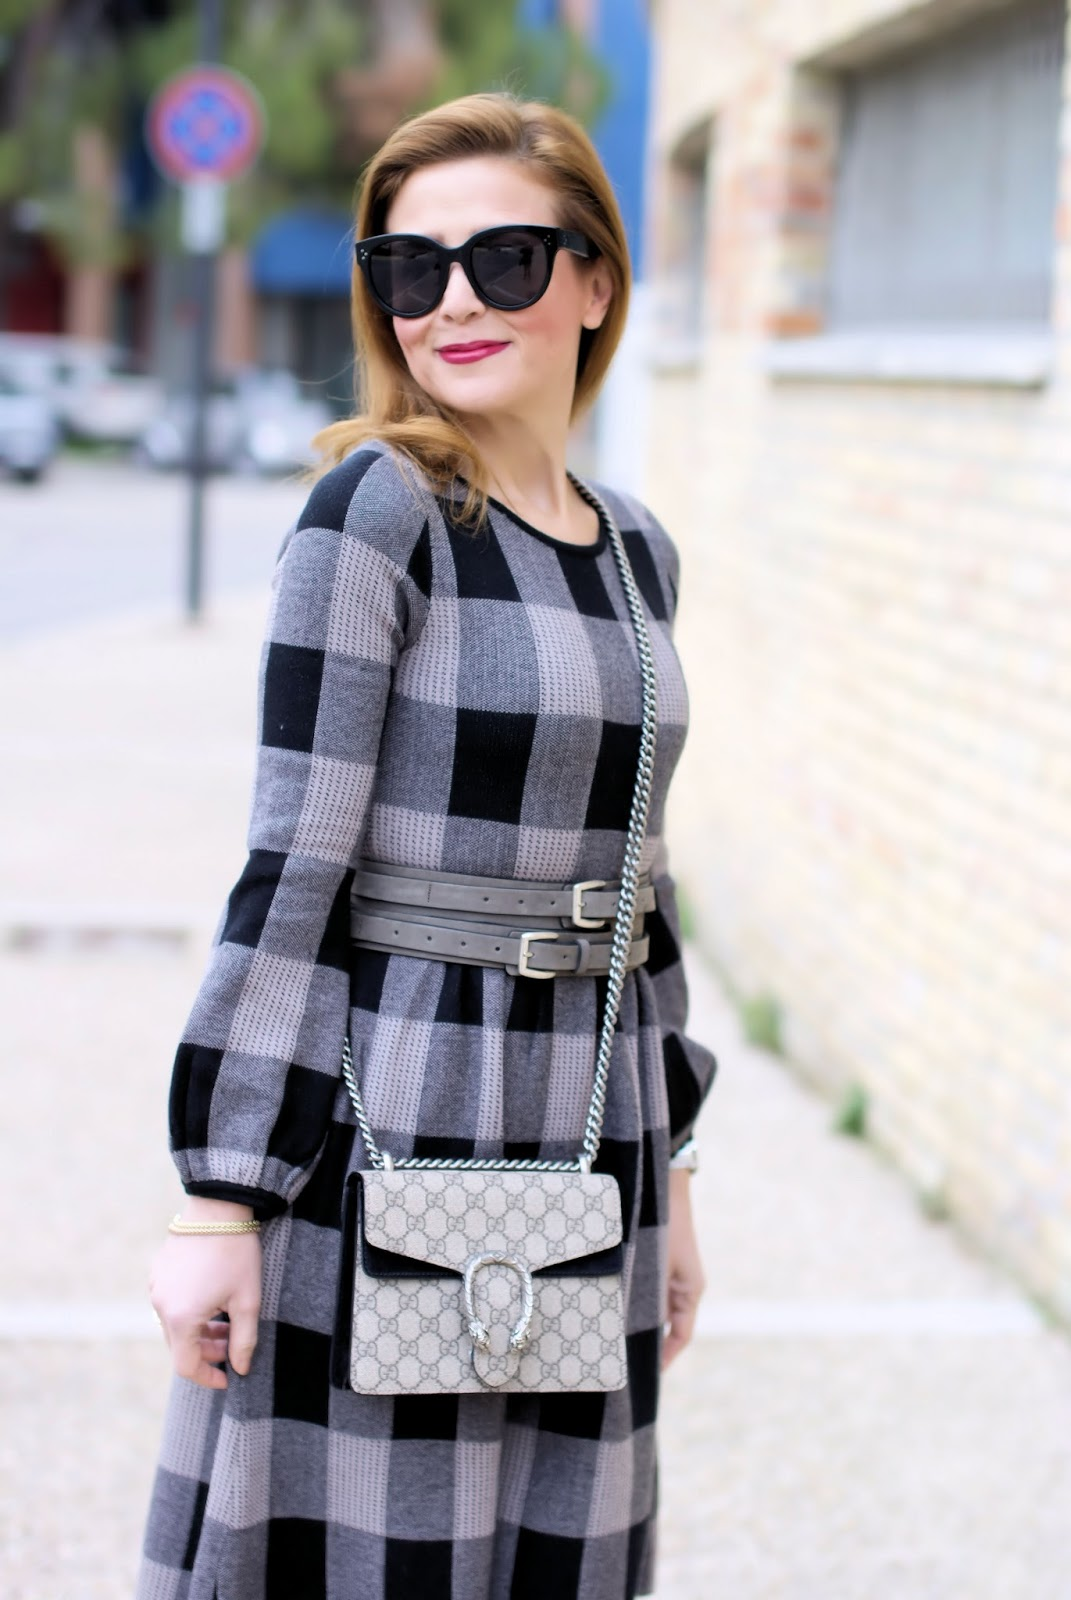 Winter dress outfit idea with check dress on Fashion and Cookies fashion blog, fashion blogger style